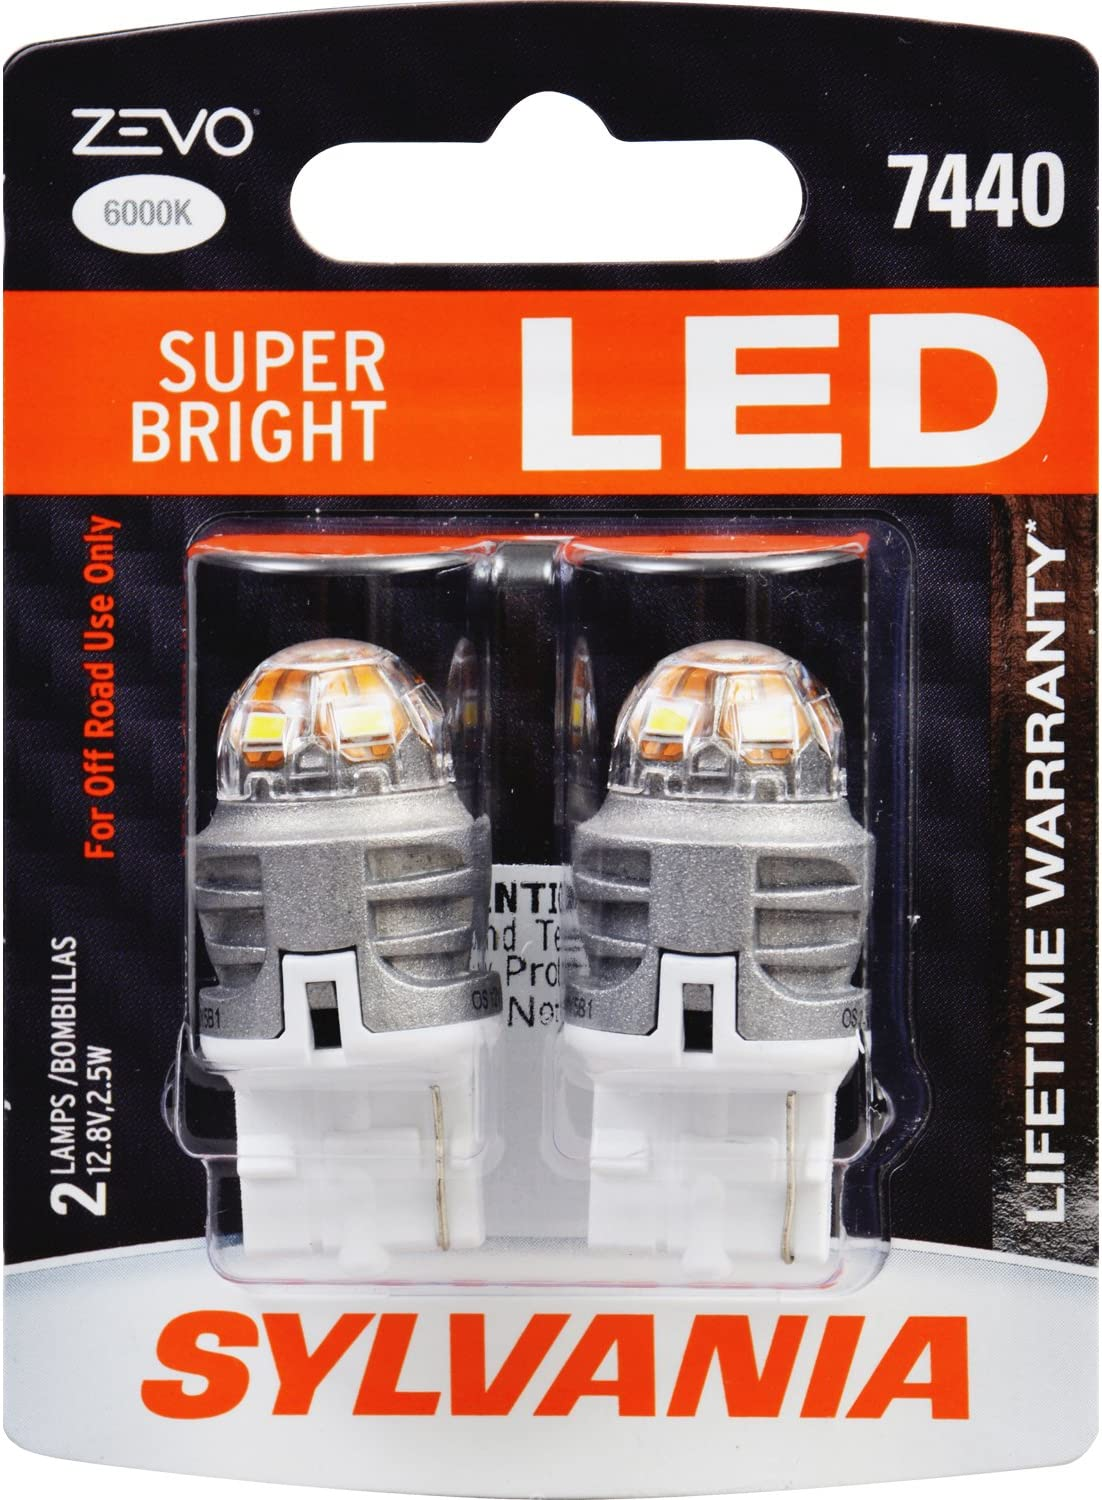 Ideal for Daytime Running Lights Bright LED Bulb 7440 T20 ZEVO LED White Bulb Contains 2 Bulbs DRL SYLVANIA and Back-Up//Reverse Lights